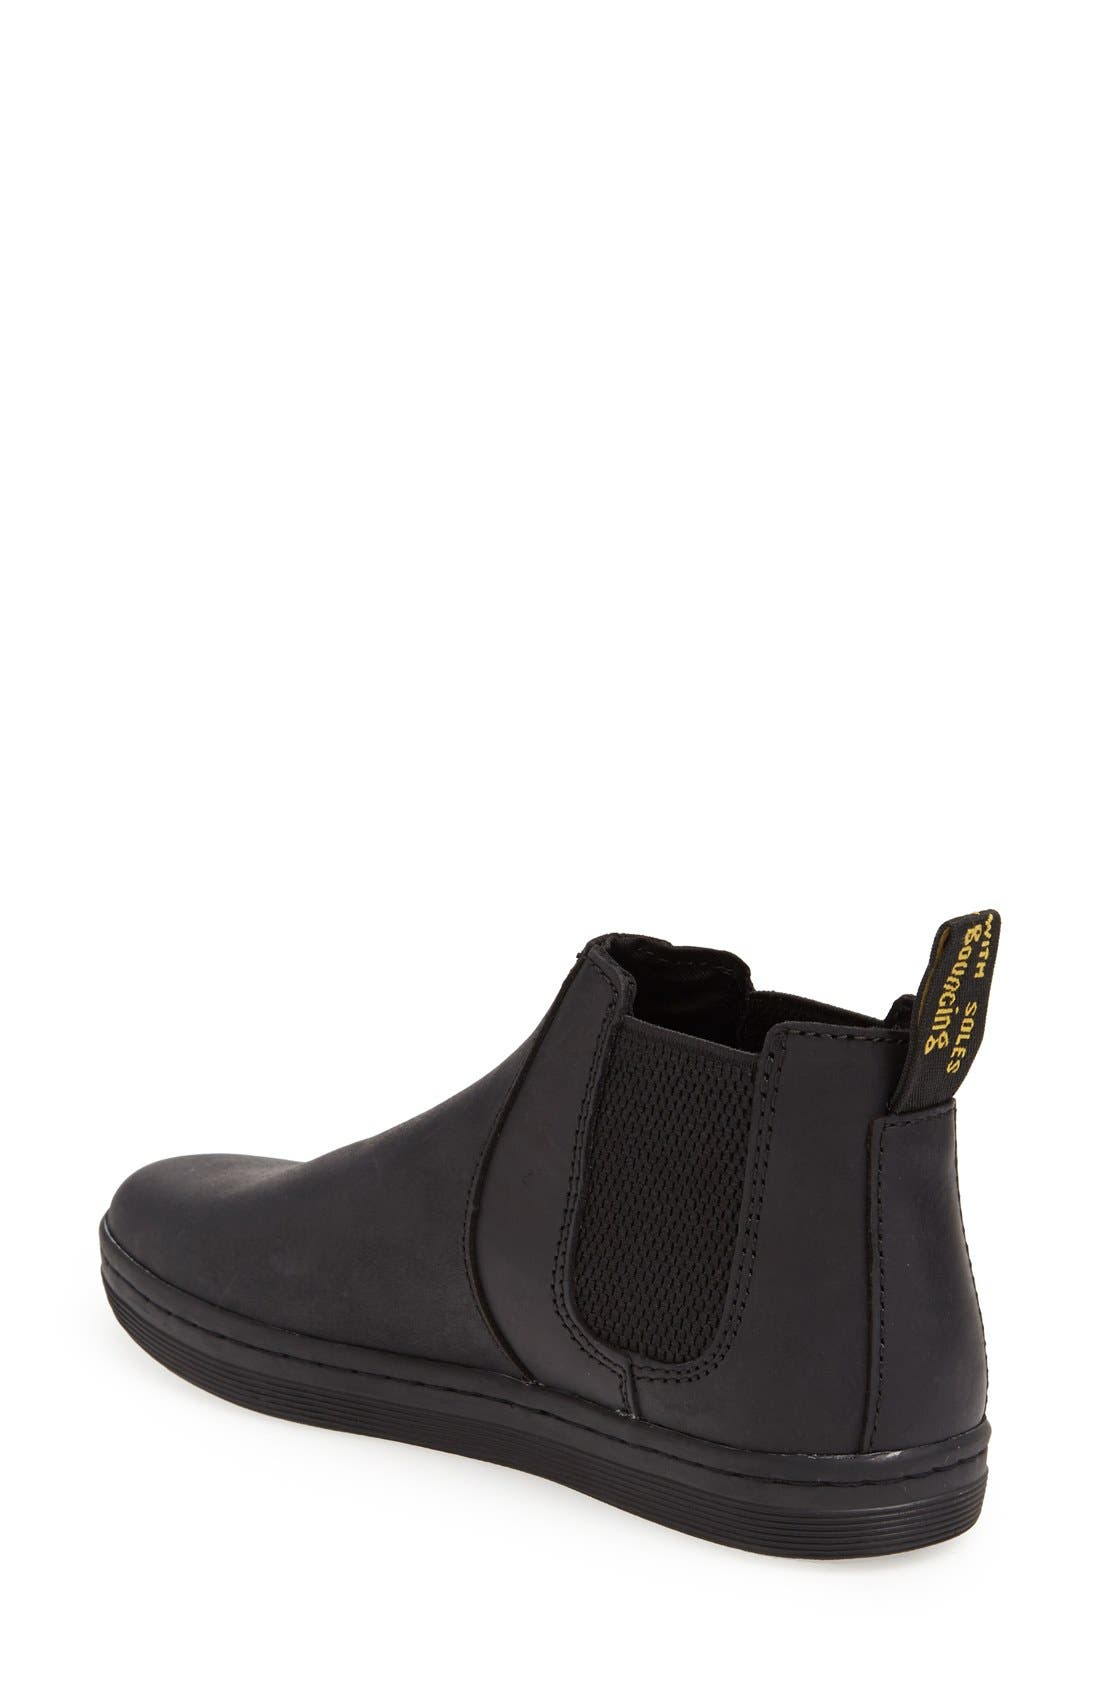 'Katya' Chelsea Boot,                             Alternate thumbnail 3, color,                             001